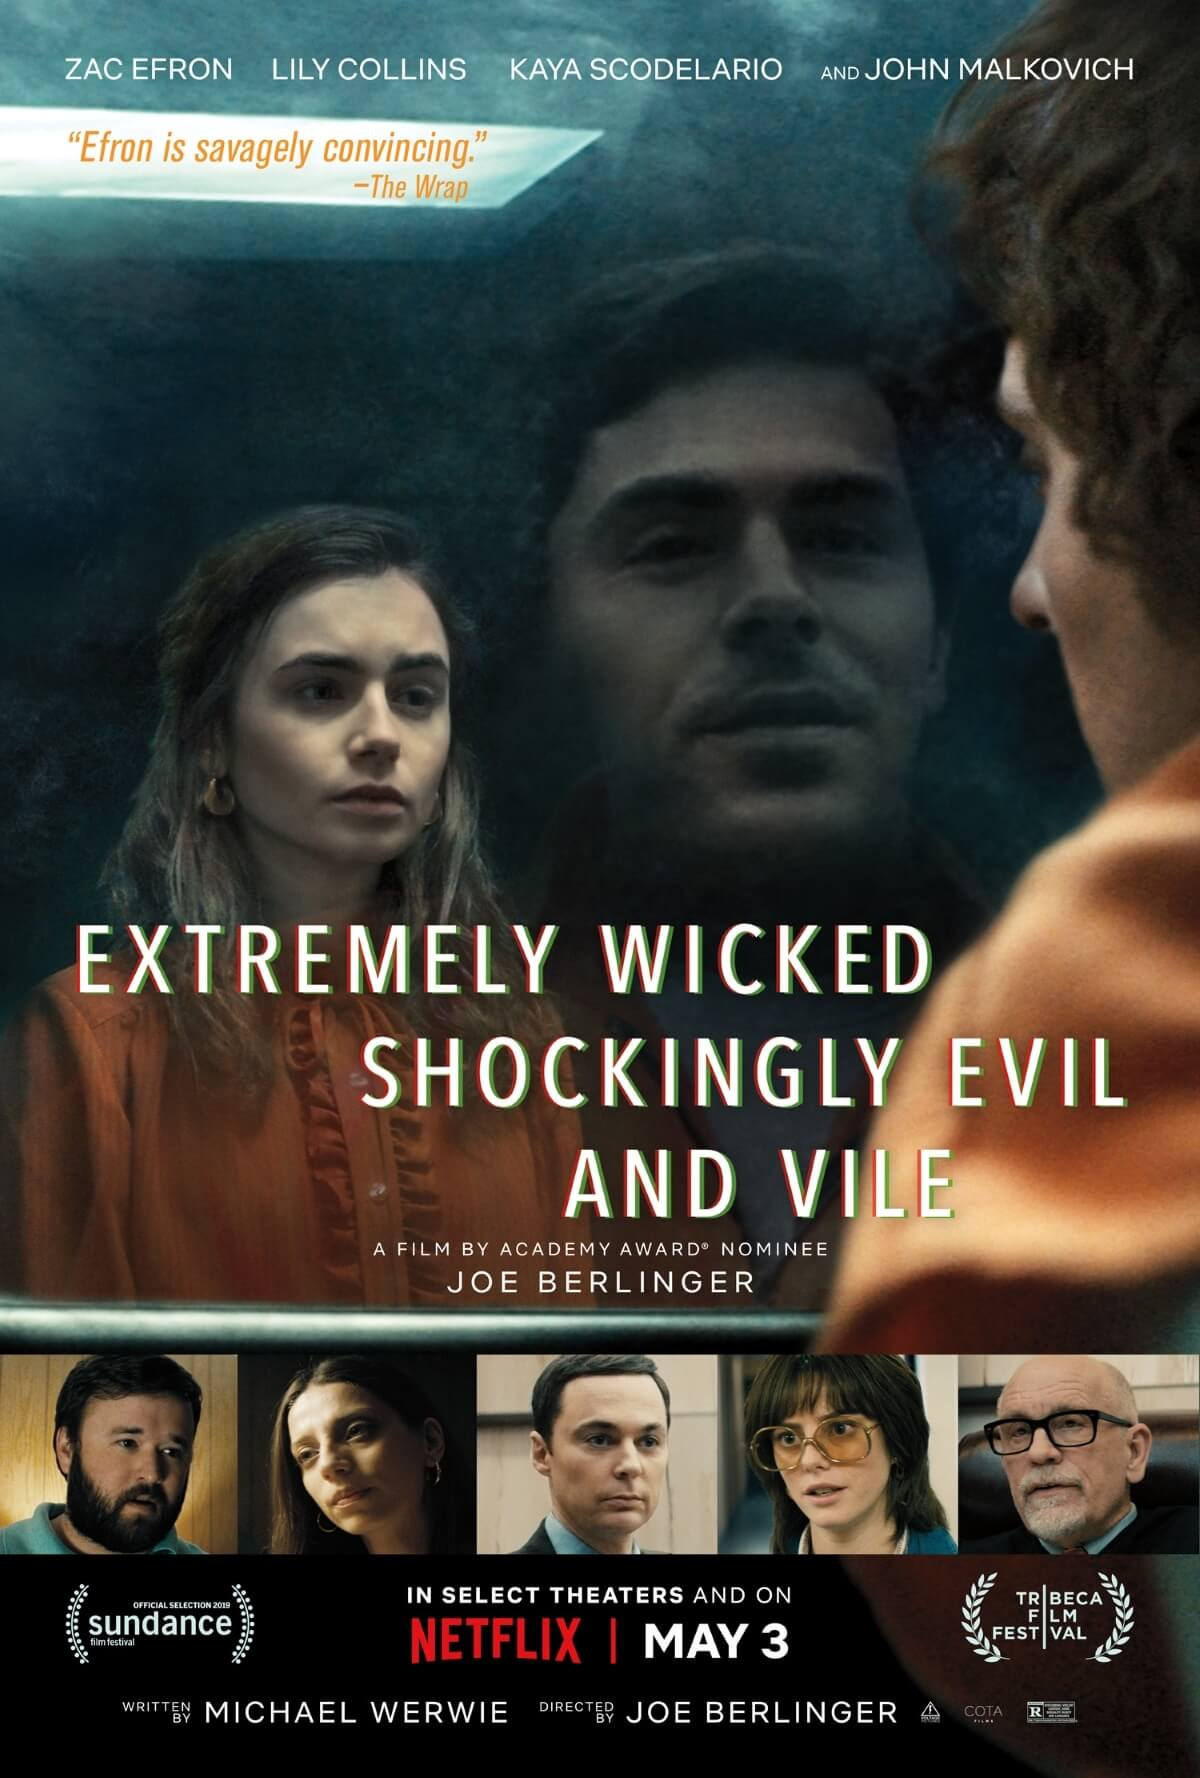 Movie poster for Netflix's Extremely Wicked, Shockingly Evil and Vile